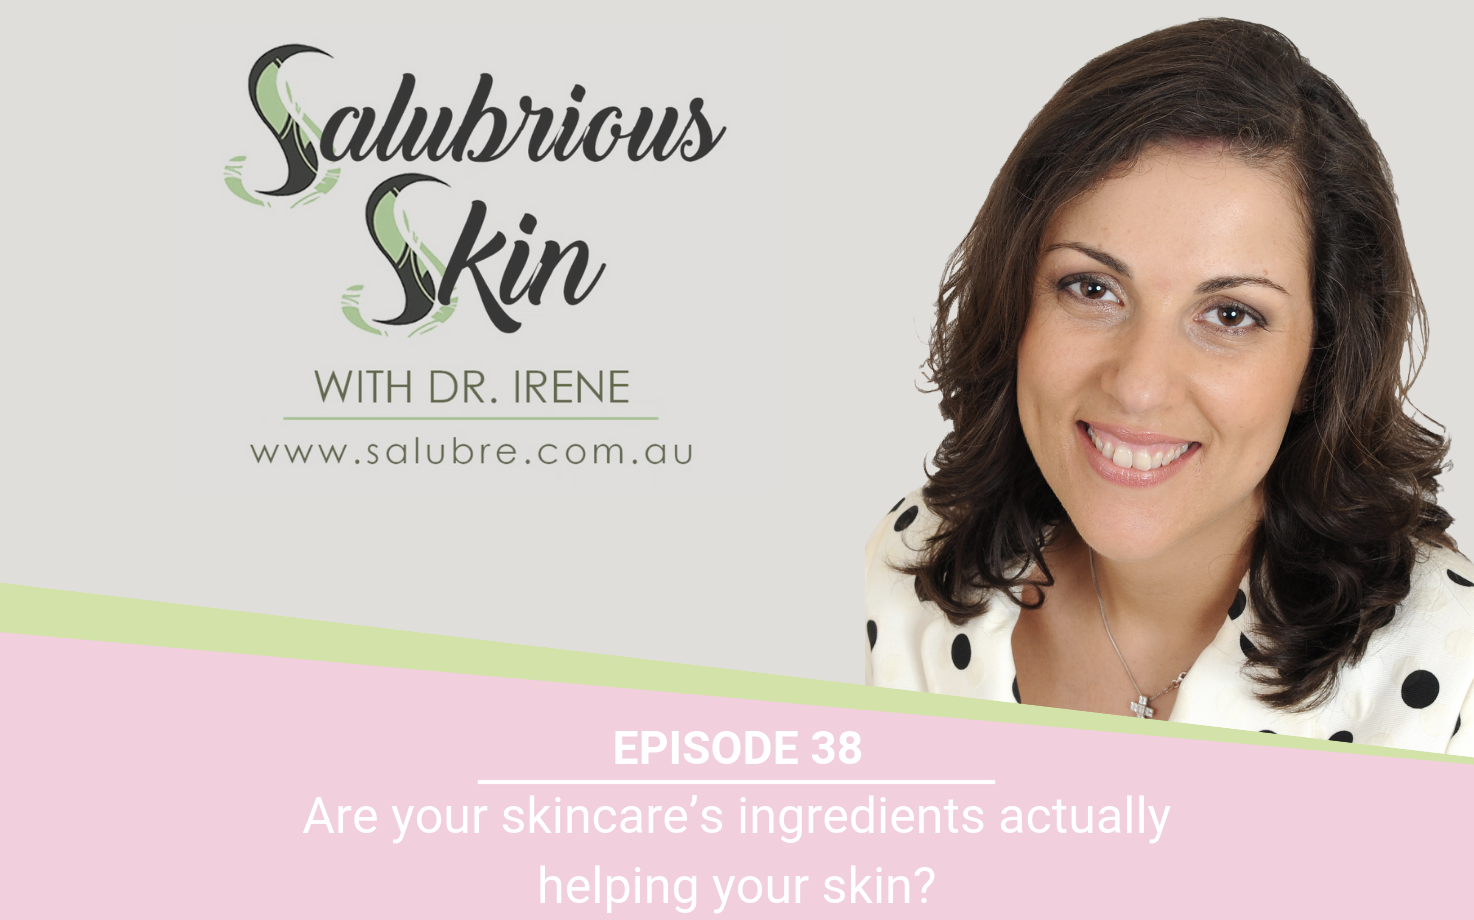 Podcast 38: Are your skincare's ingredients actually helping your skin?